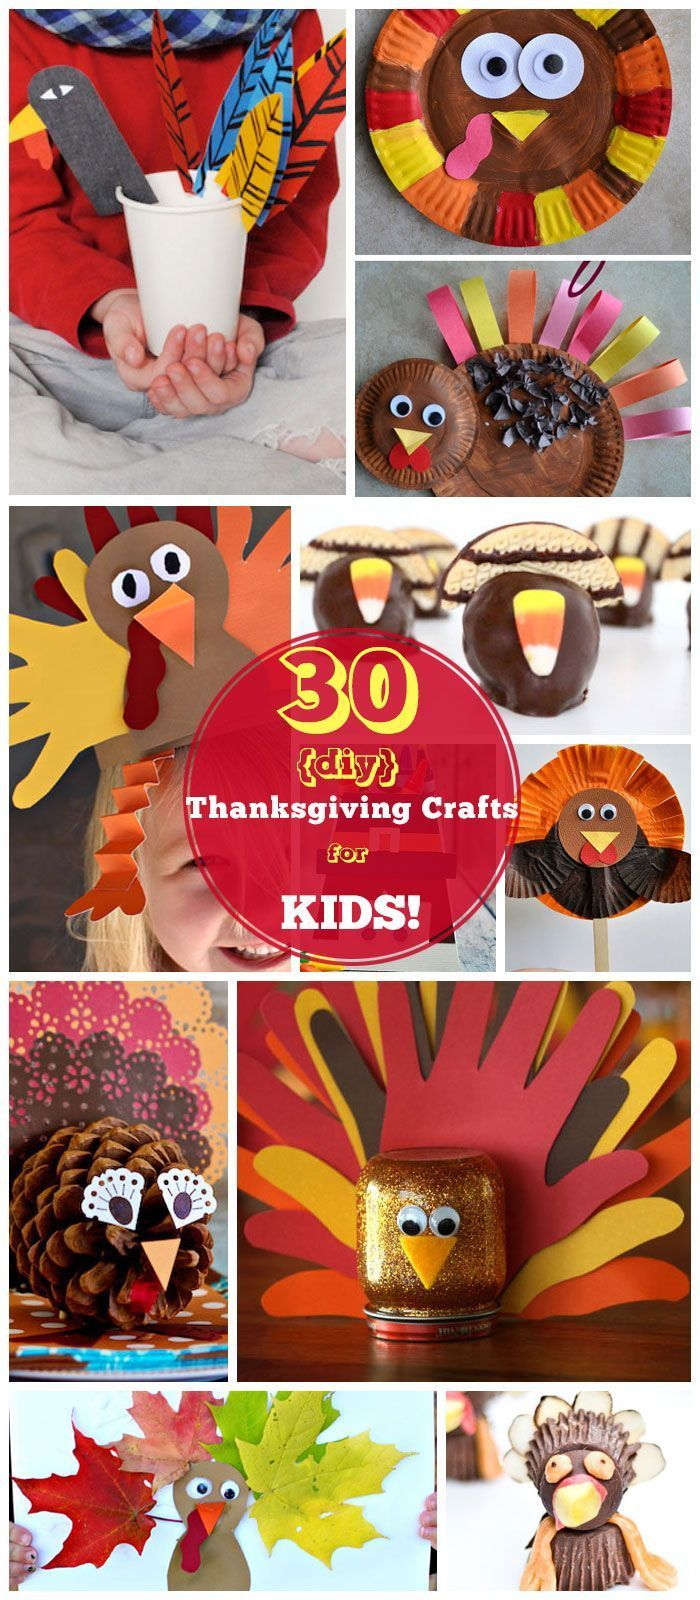 Click For 30 Diy Thanksgiving Crafts For Kids To Make Easy Thanksgiving Cra Thanksgiving Crafts For Kids Thanksgiving Crafts For Toddlers Thanksgiving Crafts